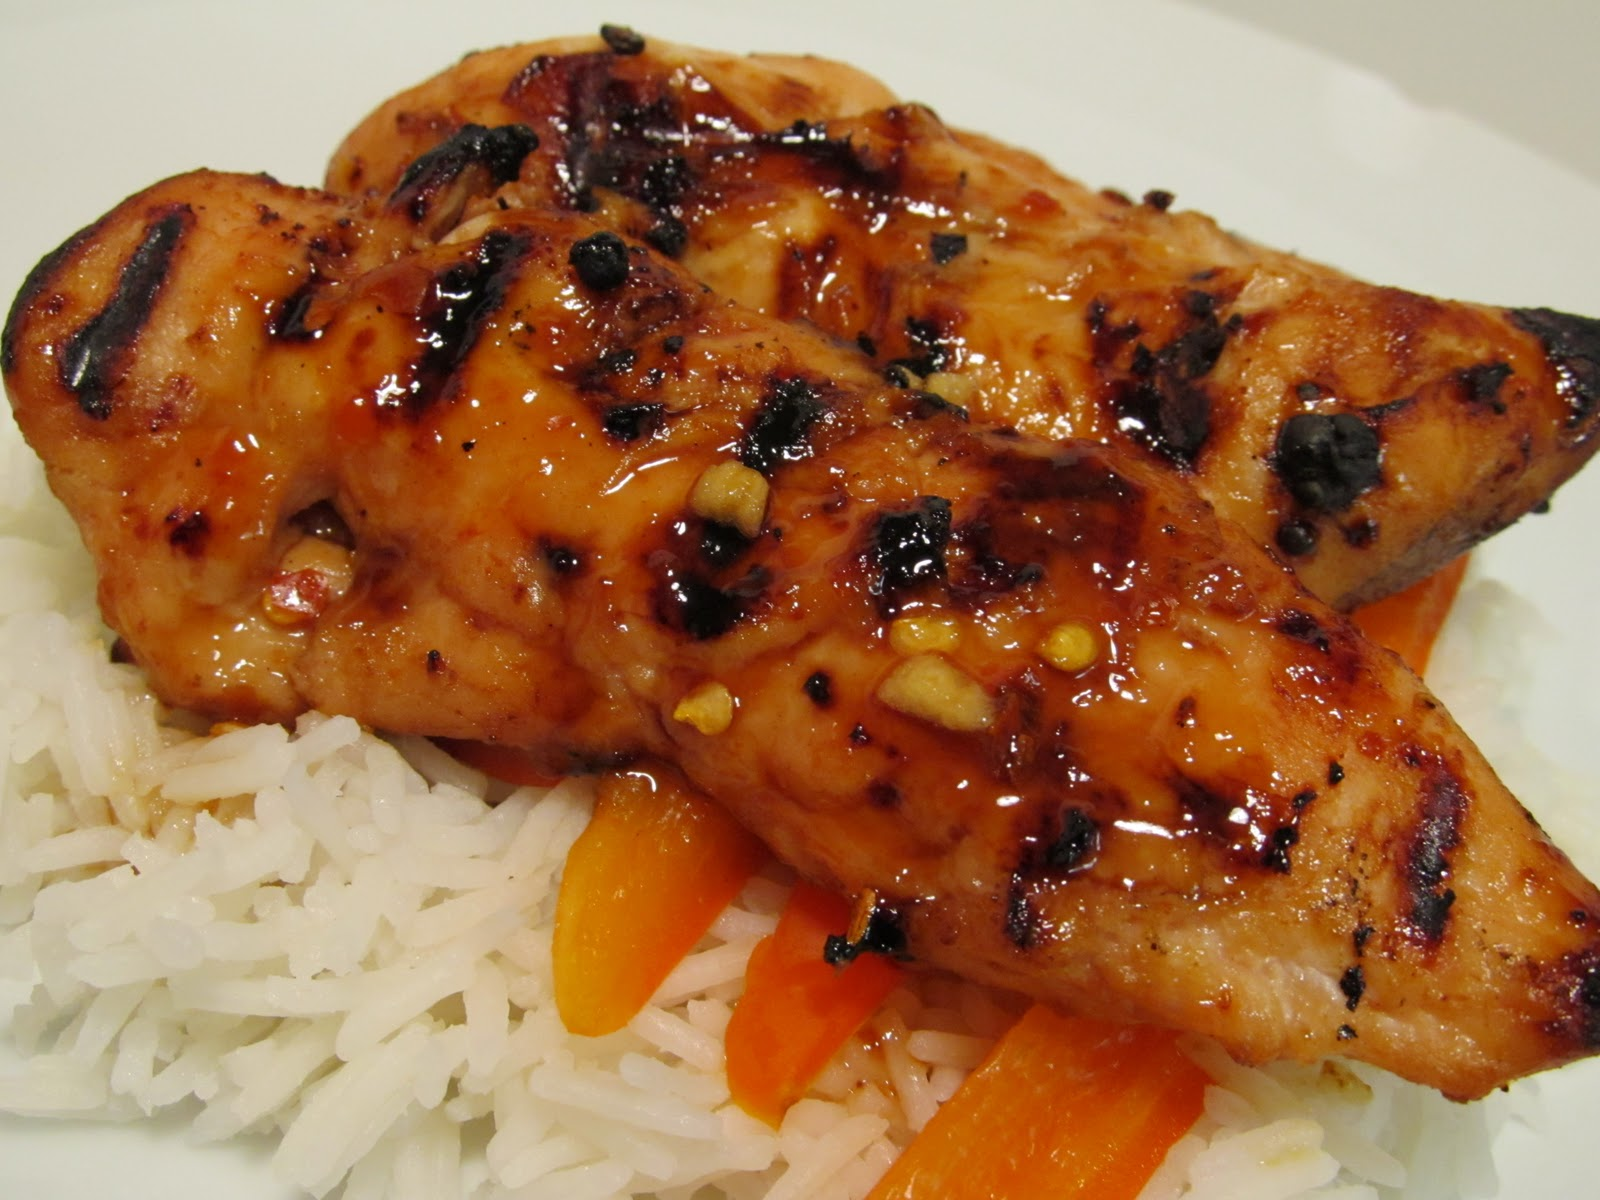 Jenn's Food Journey: Grilled Bourbon Chicken